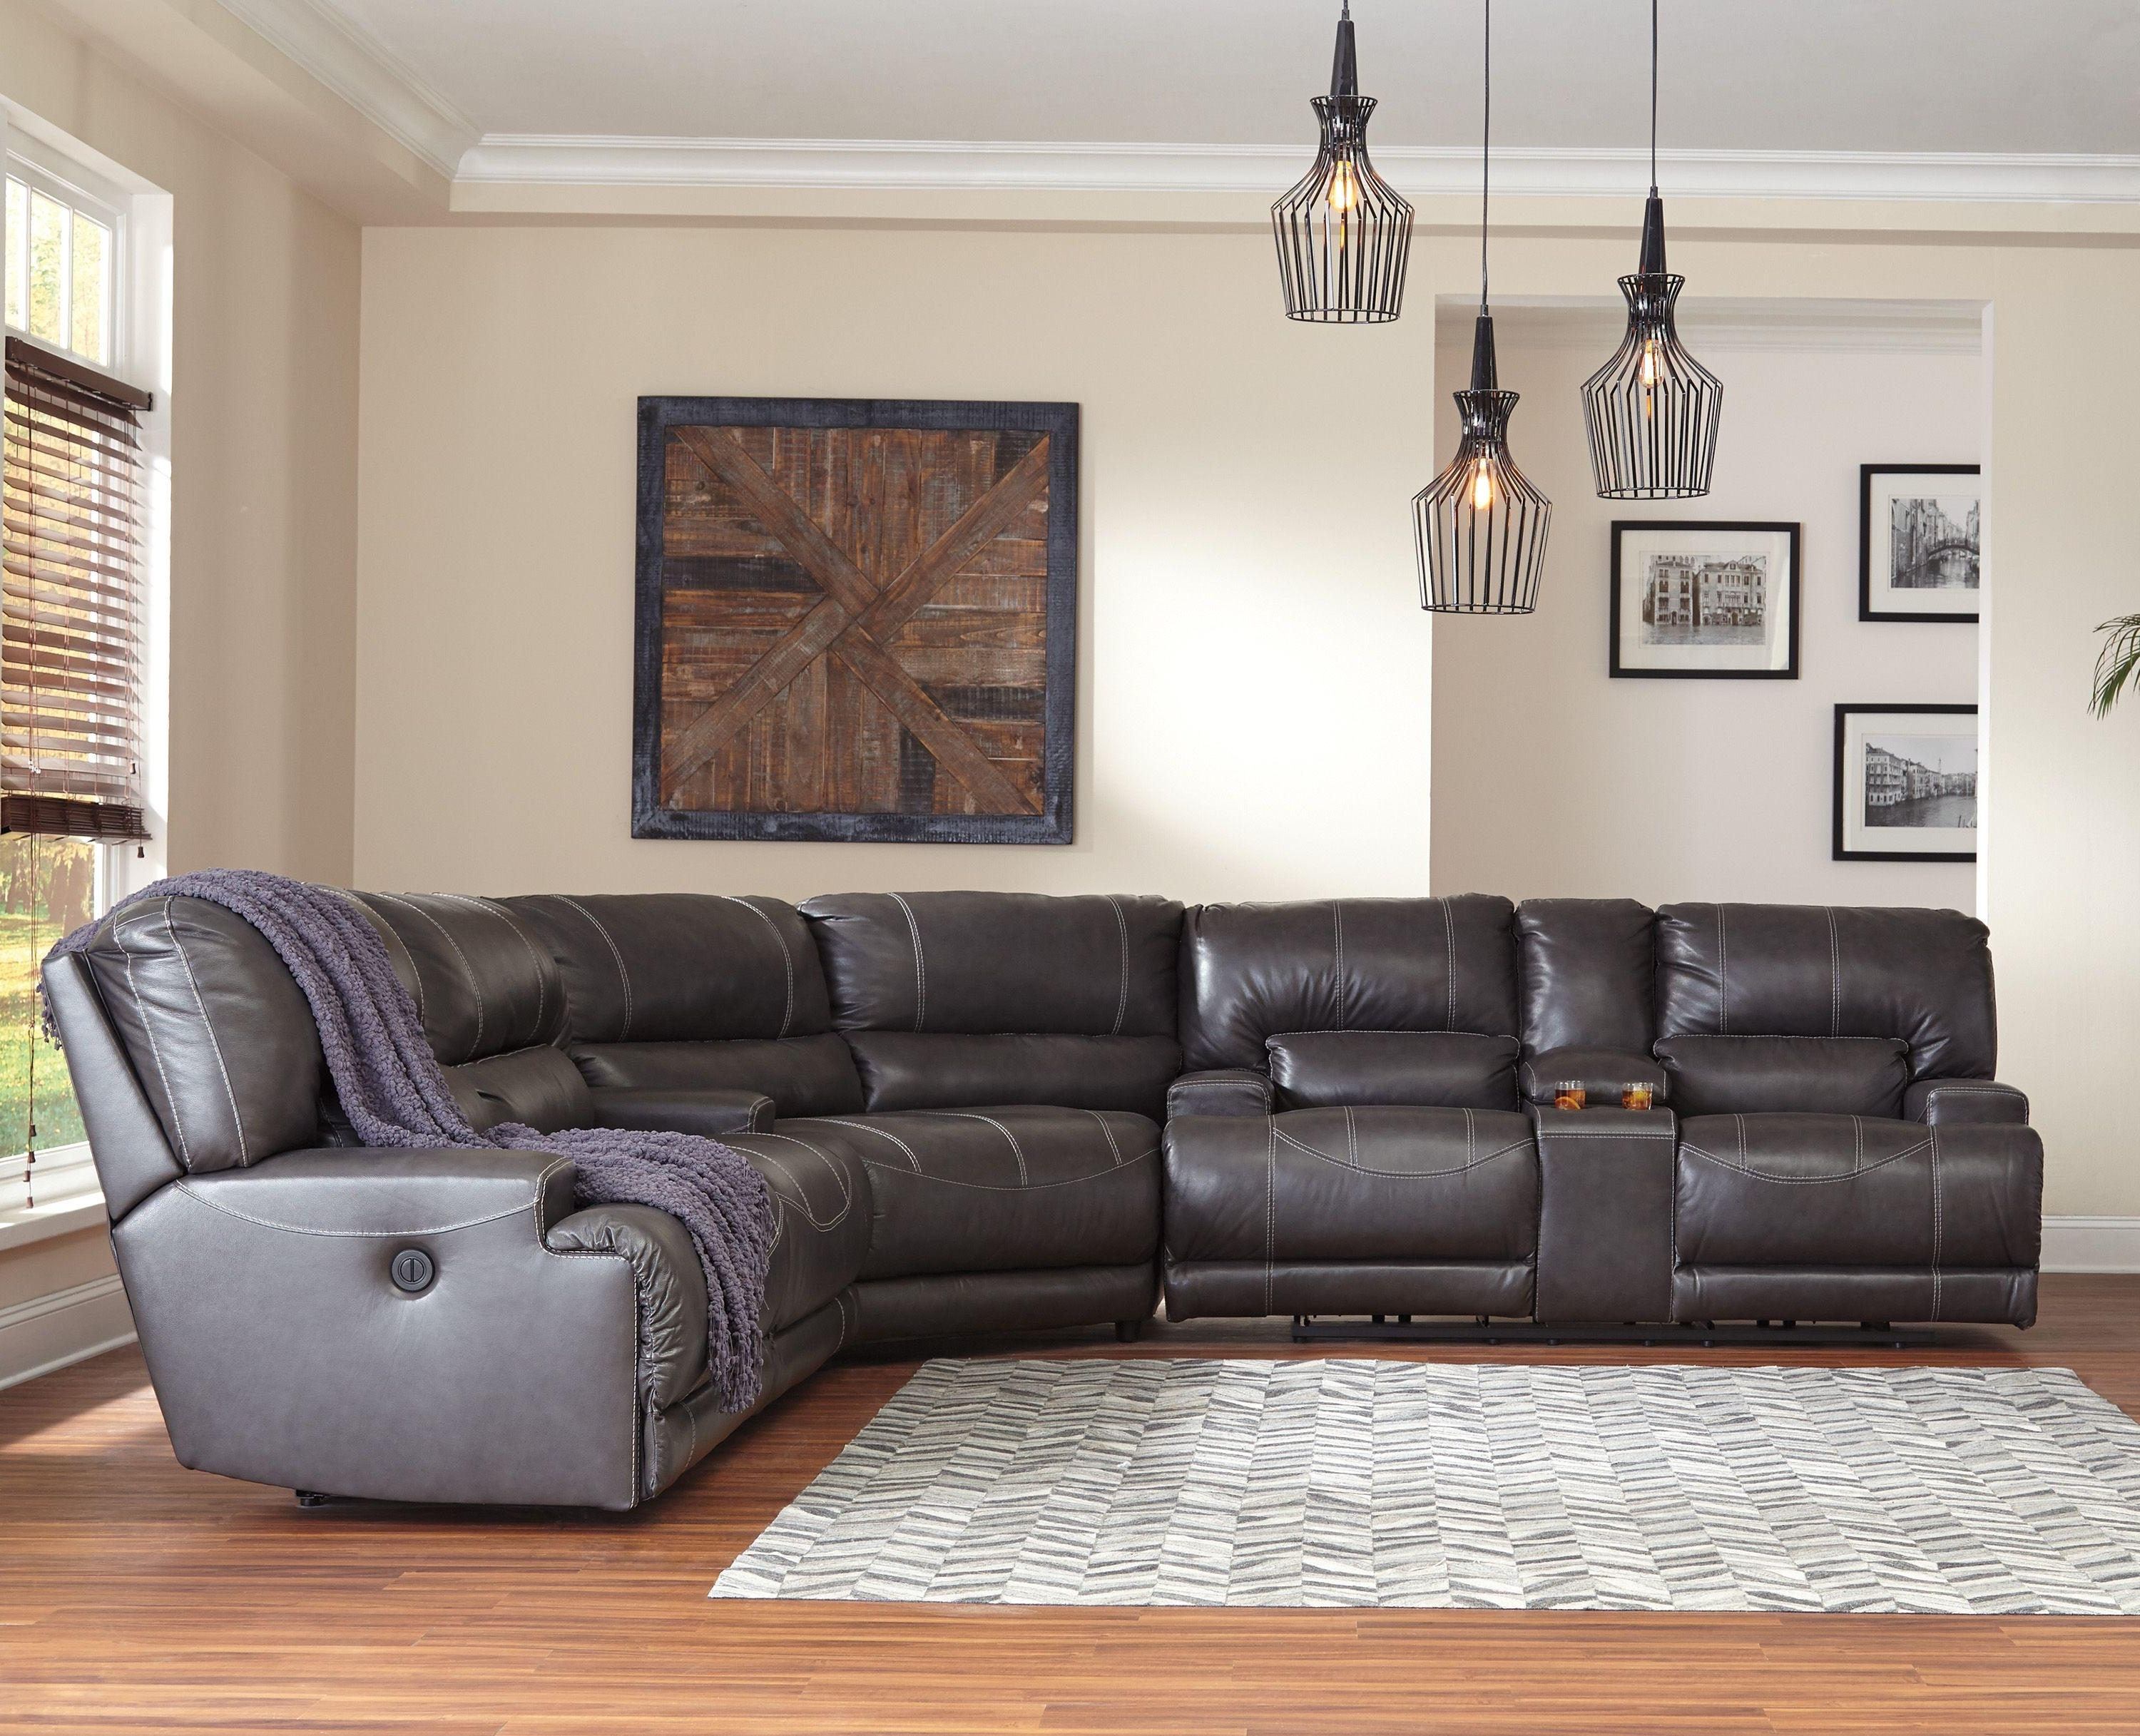 couches warranty protection furniture wibus mart and couch info in nebraska earth sofa luxury